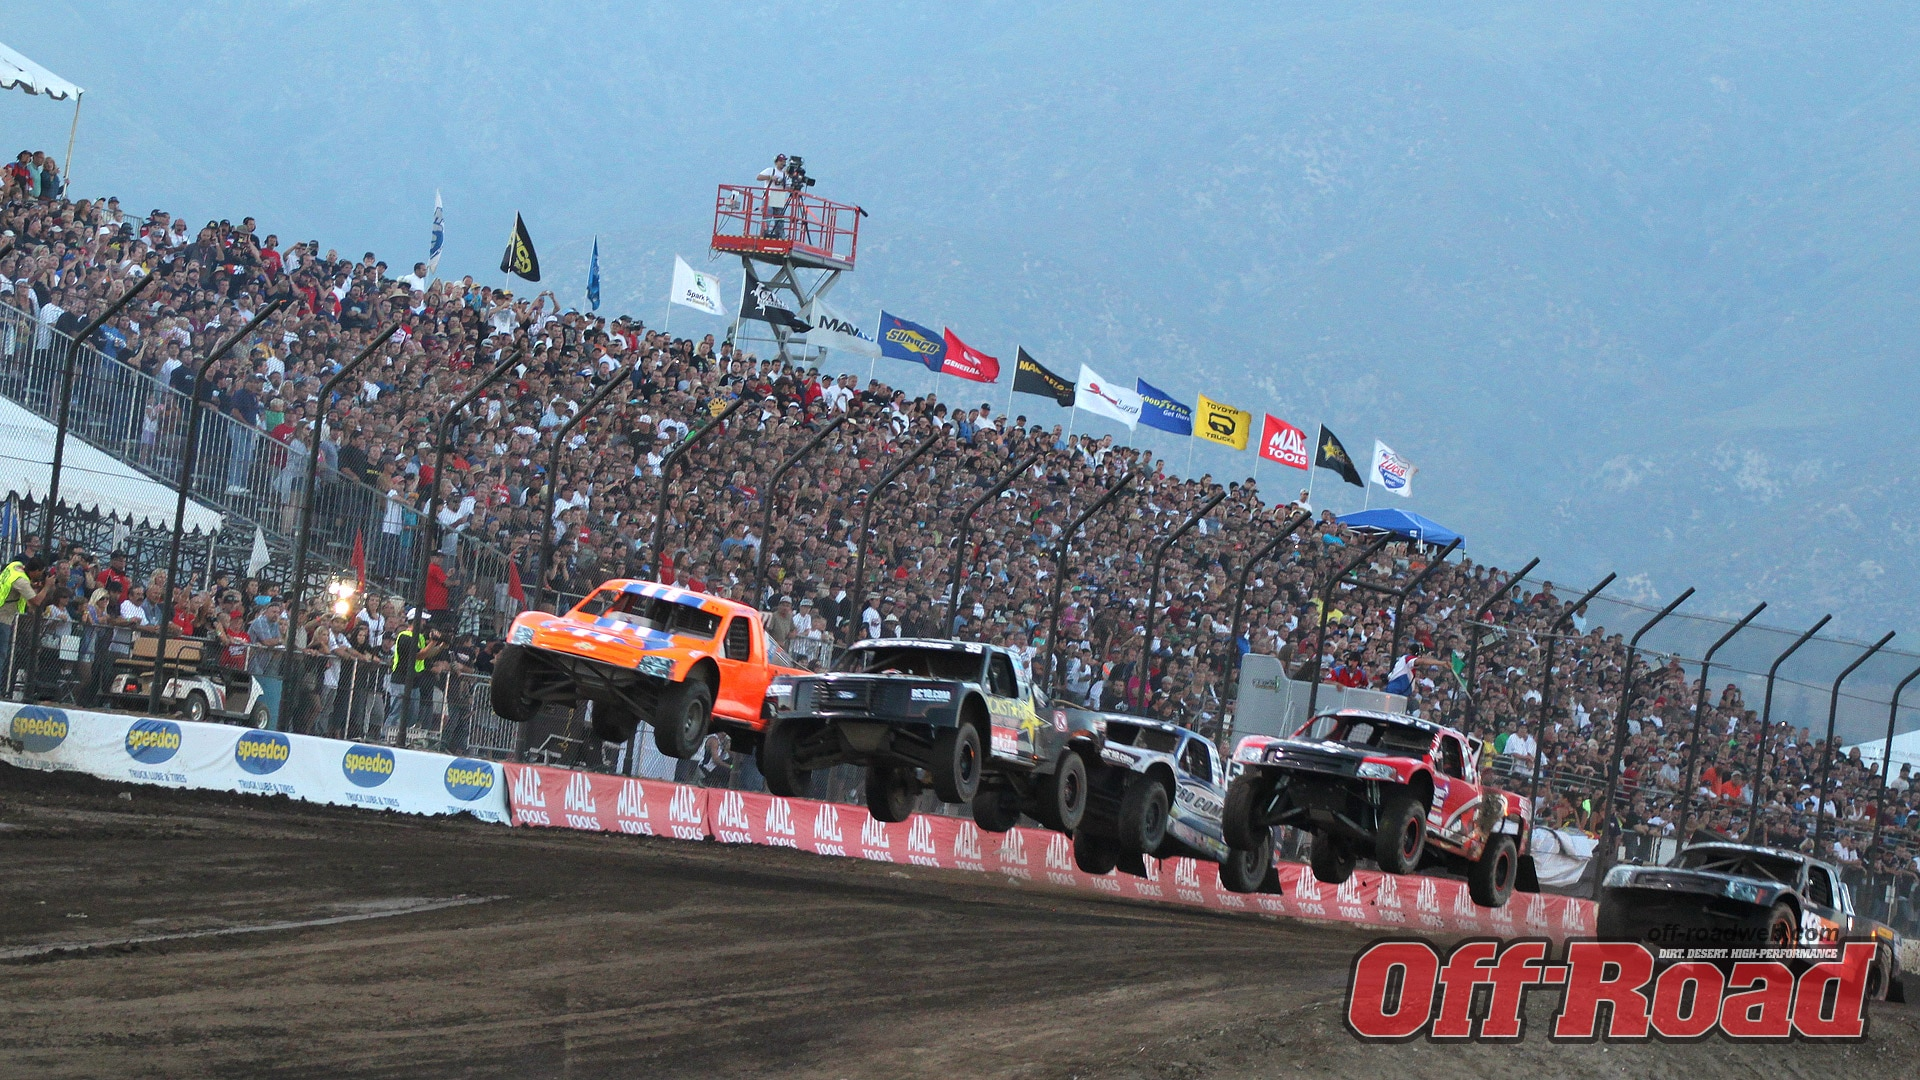 081010or 6763+lucas oil off road racing series+round 9 pro 4 unlimited